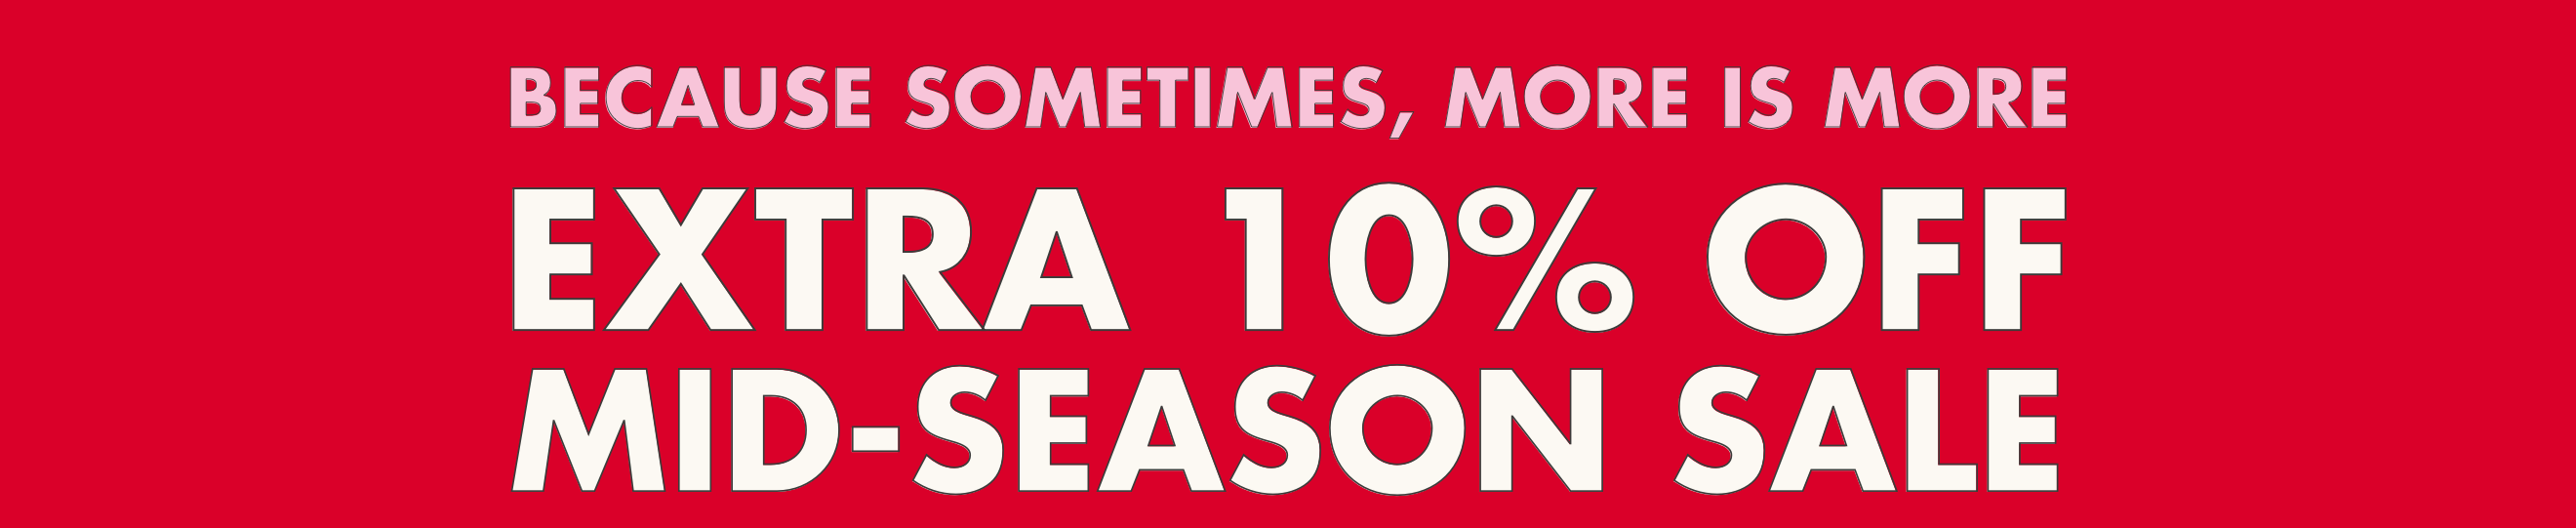 Because sometimes, more is more. Extra 10% off. Mid Season Sale - Cath Kidston